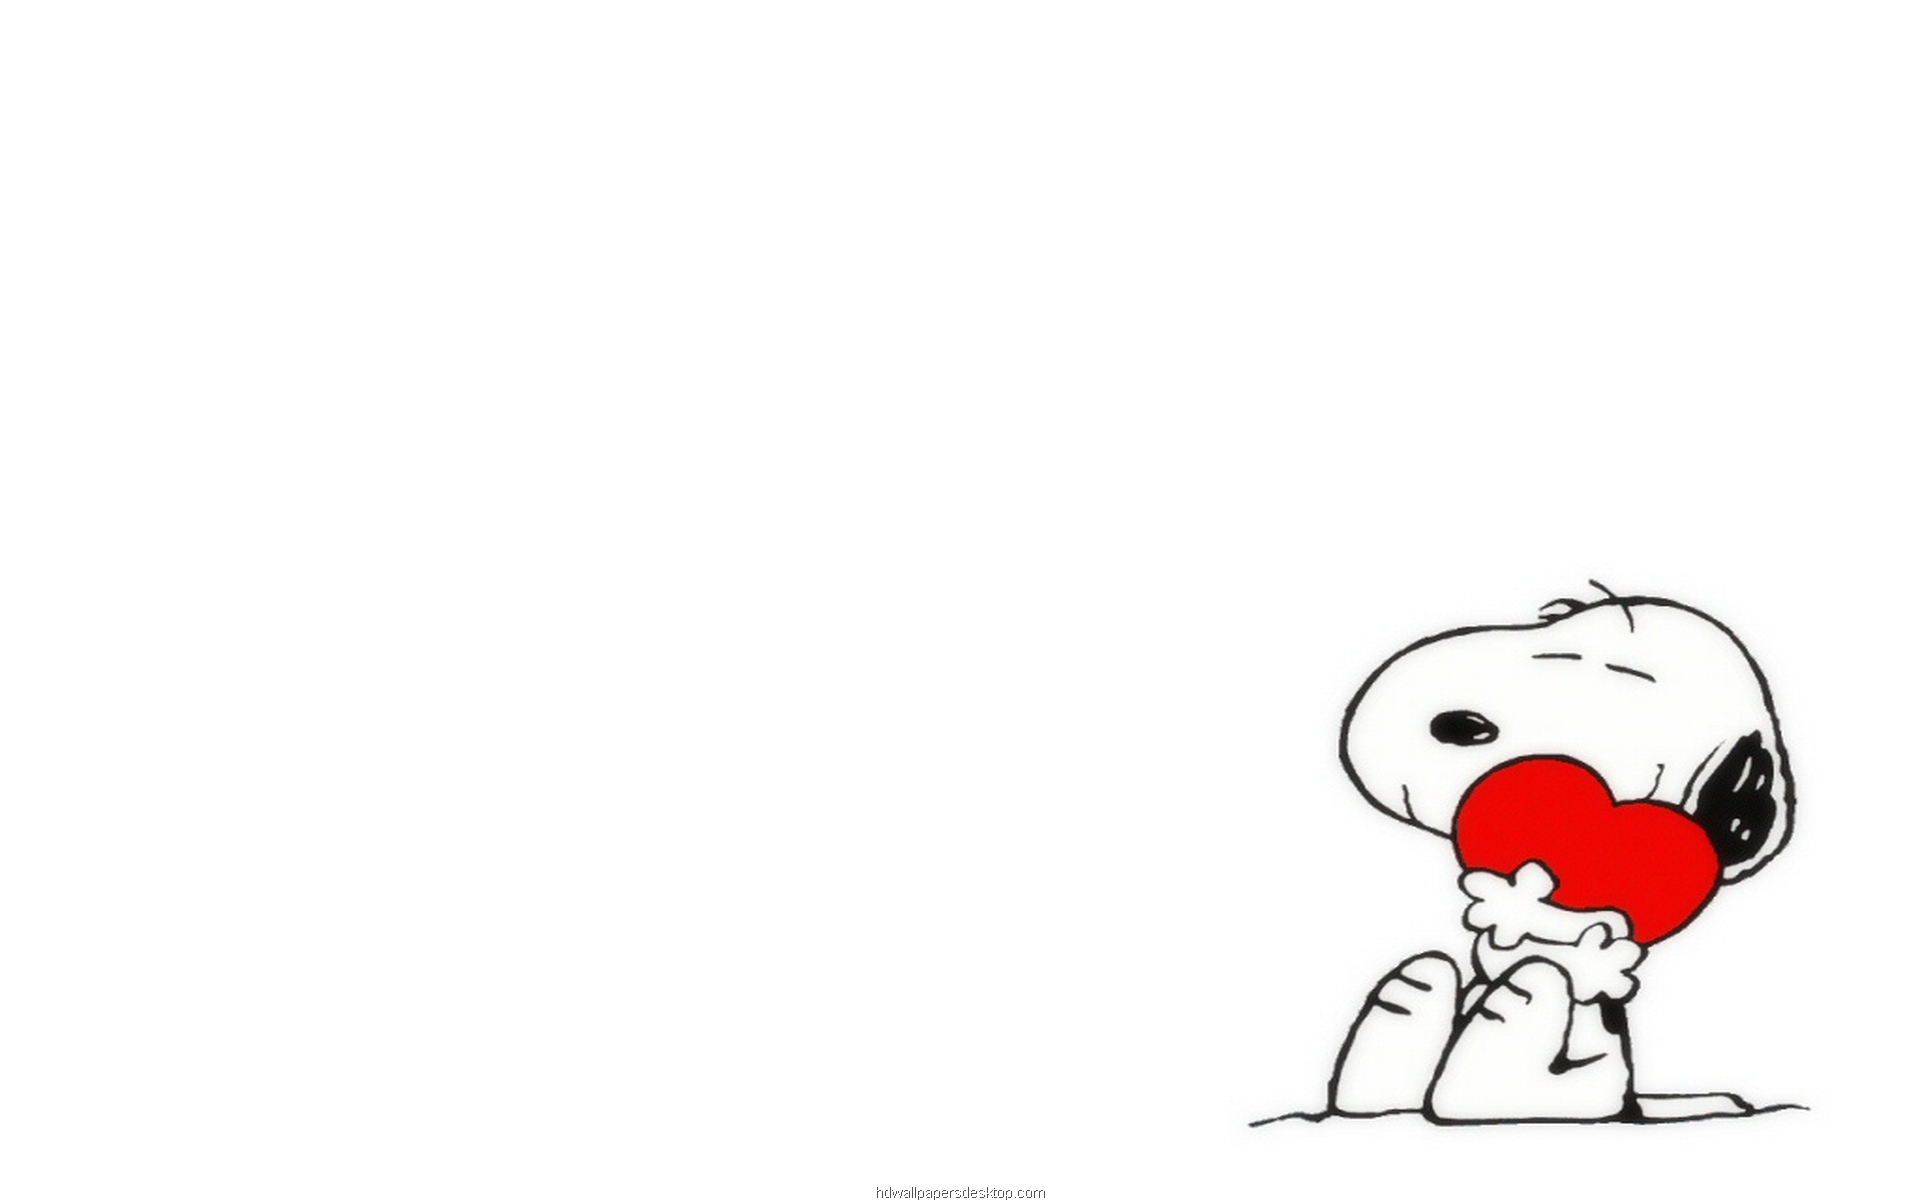 Snoopy Wallpaper - WallpaperSafari